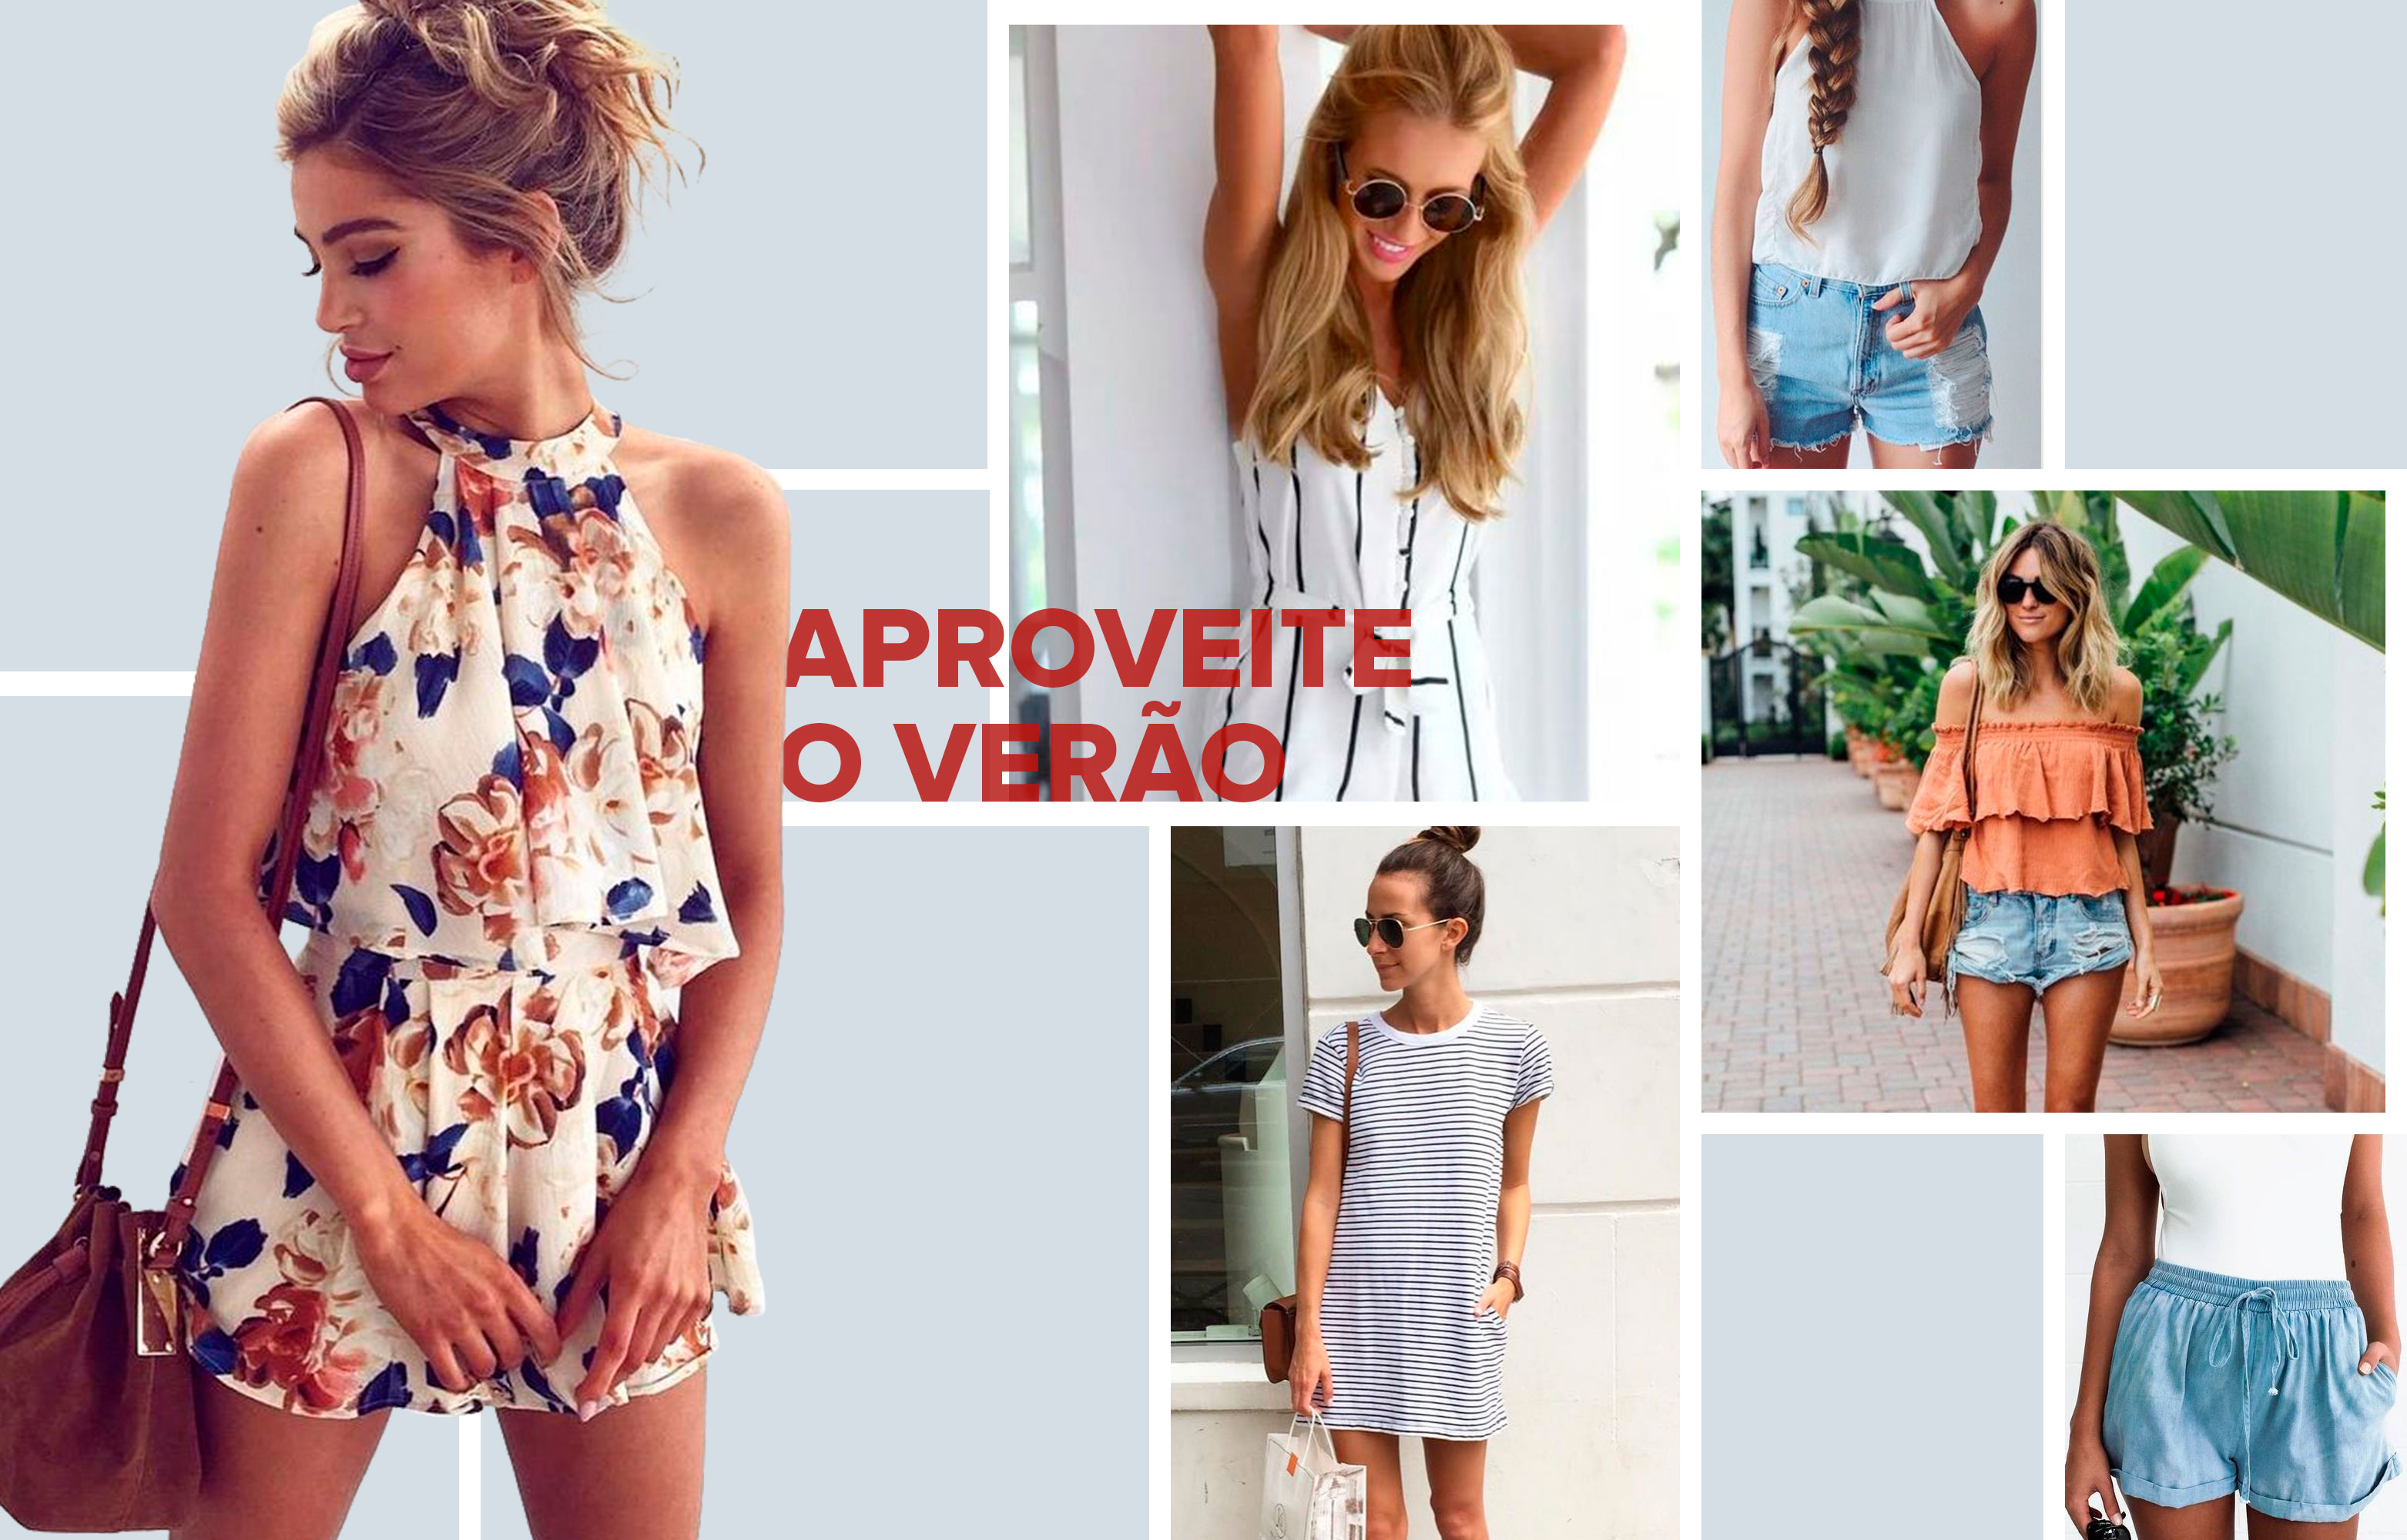 248.1_all_bras_blog_1_quinzena_jan_18_verao